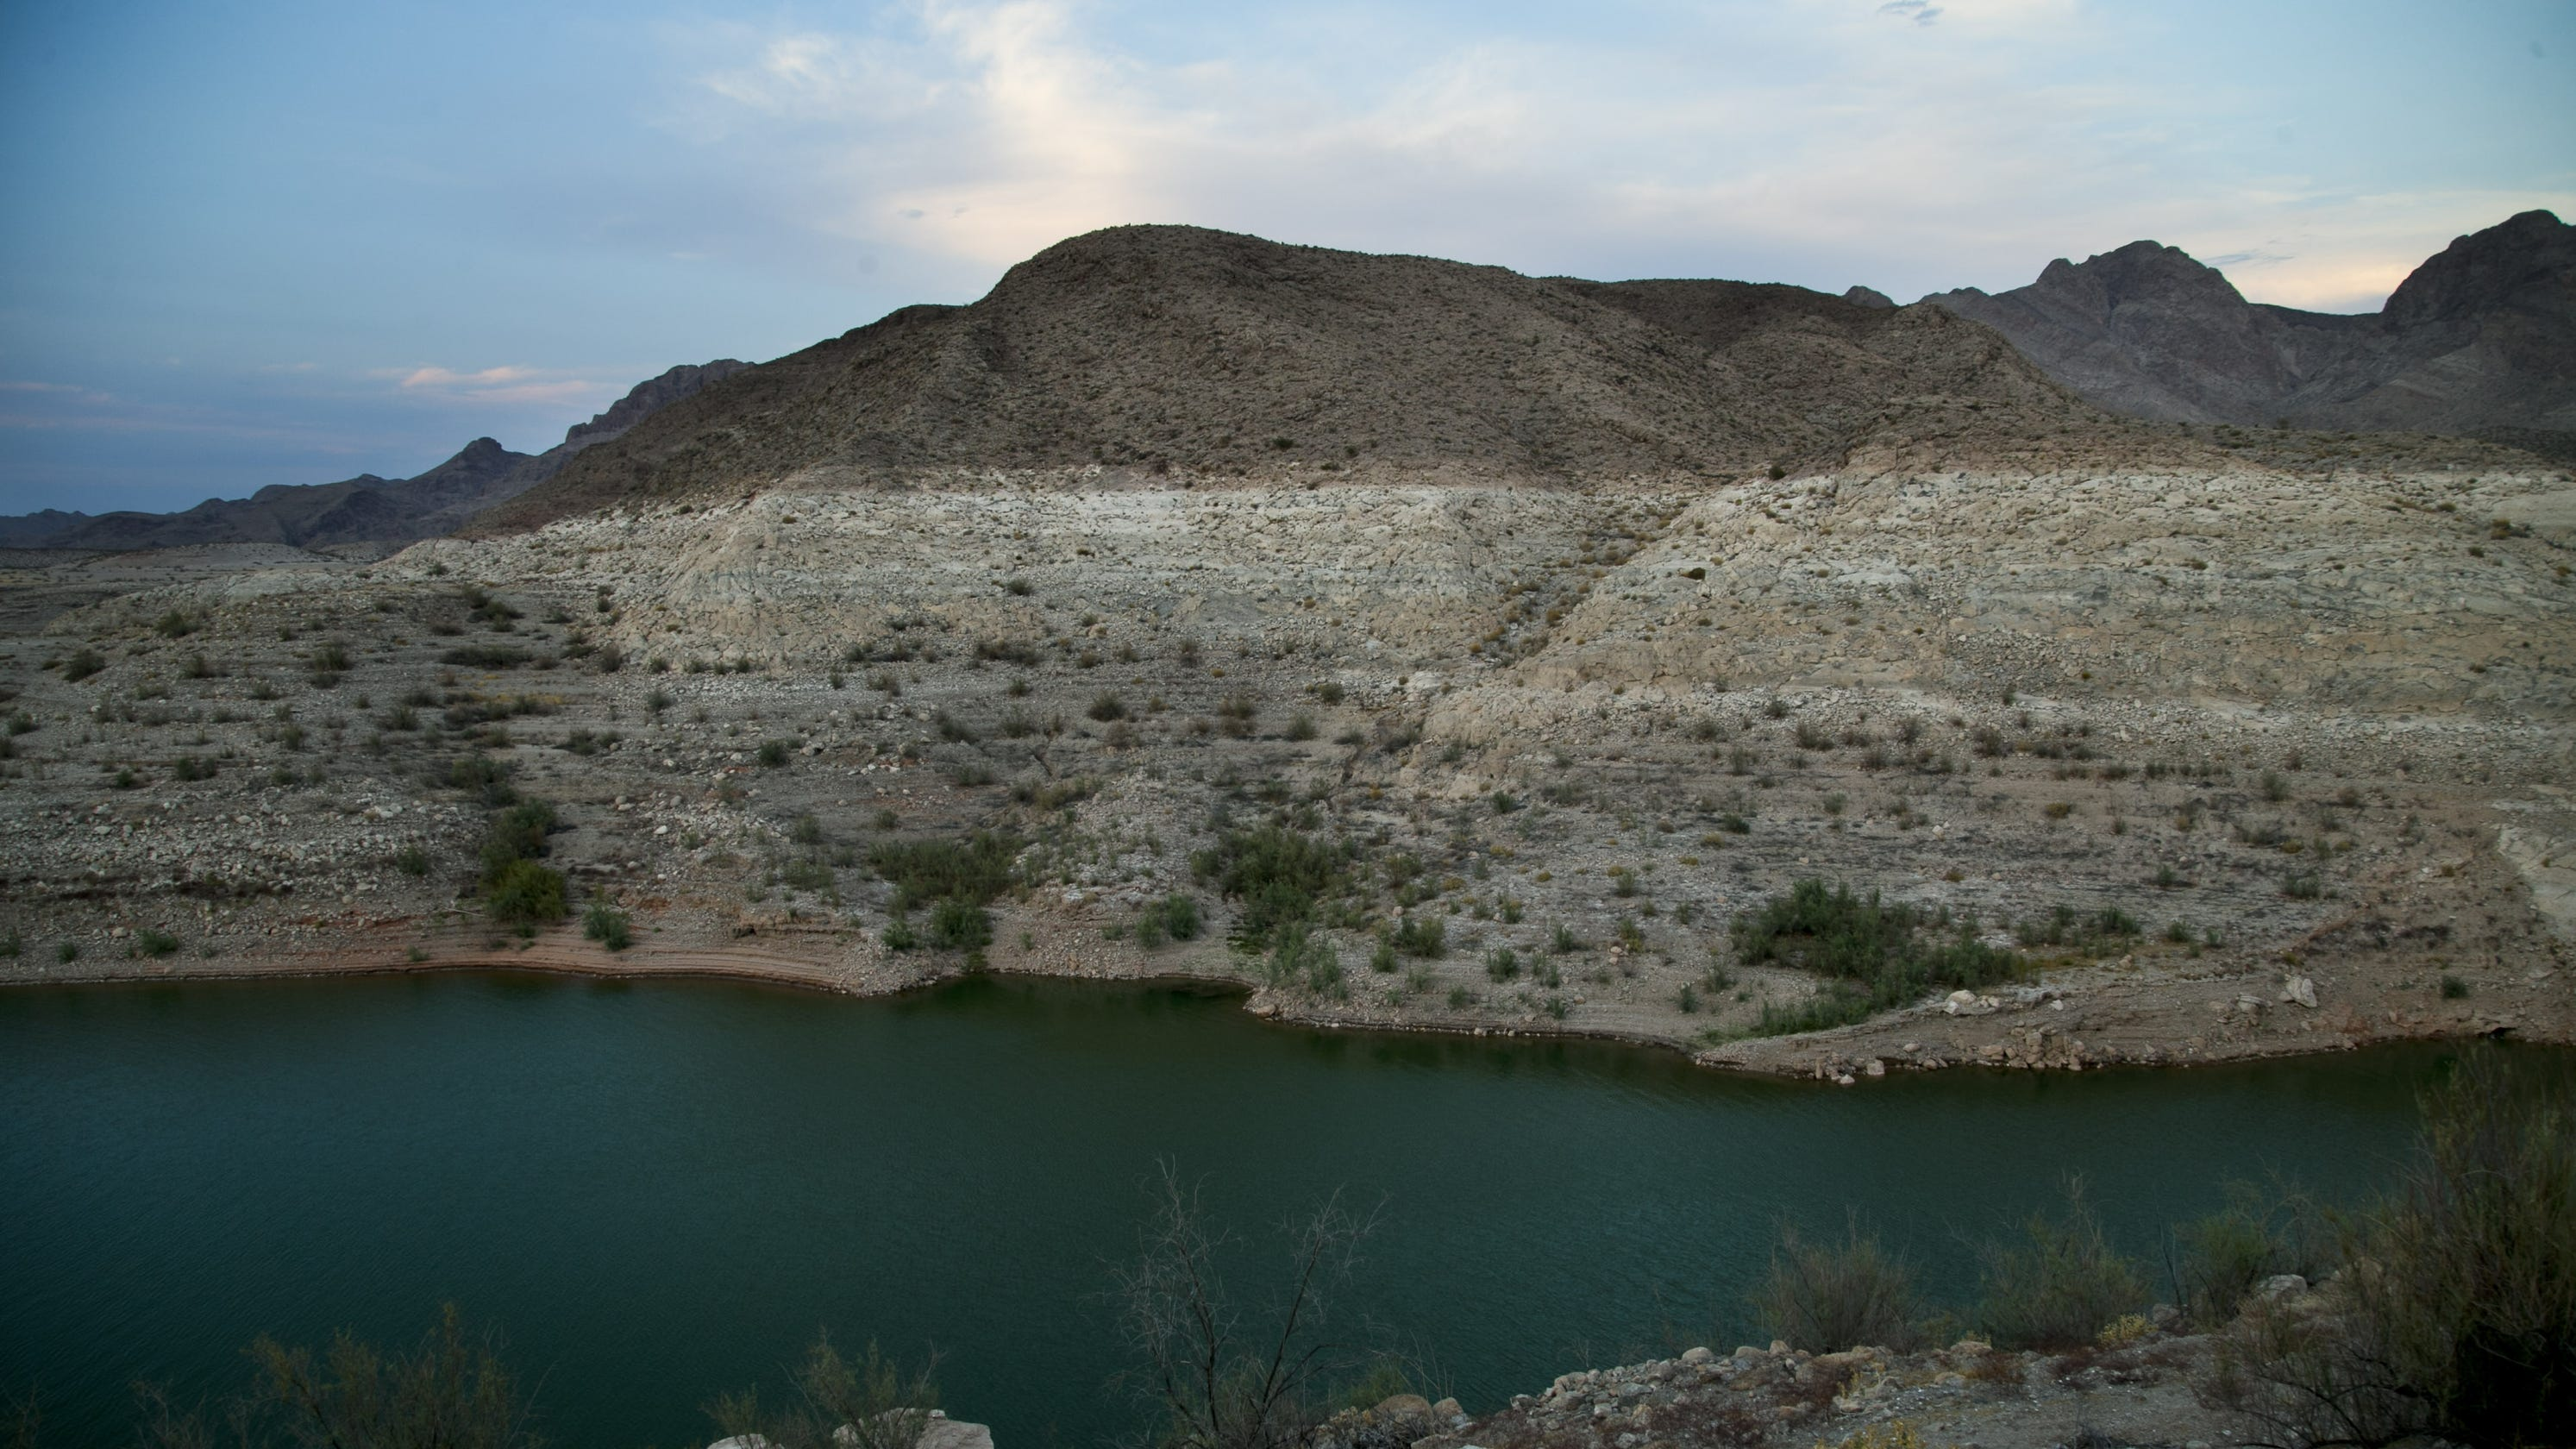 Arizona may have to cut back on water use in 2020, outlook says